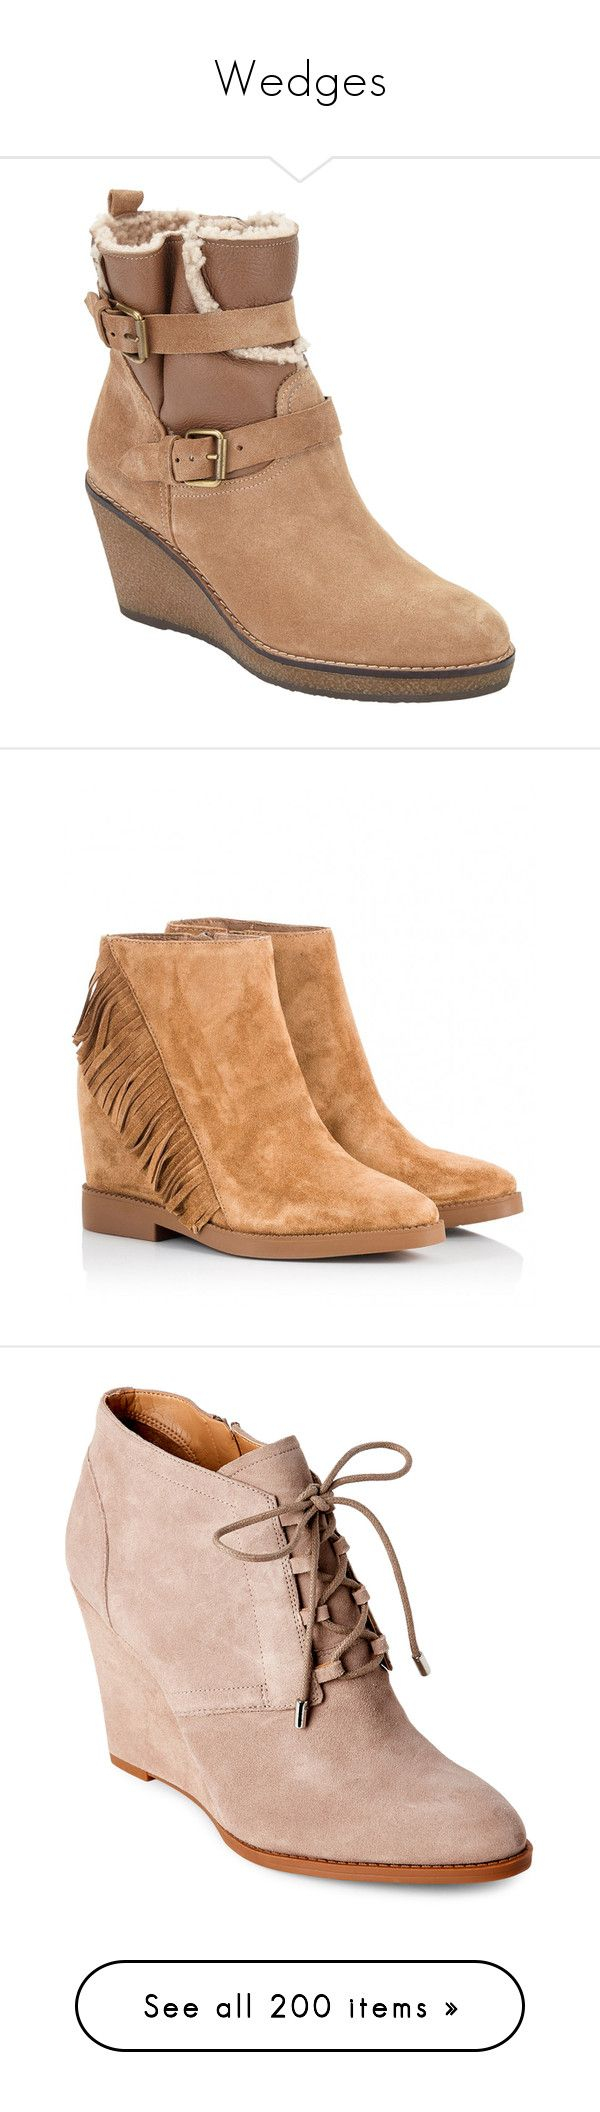 """Wedges"" by kingdomofmercia ❤ liked on Polyvore featuring shoes, boots, ankle booties, leather ankle boots, flat ankle boots, ankle boots, wedge ankle boots, wedge ankle booties, camel and suede ankle boots"